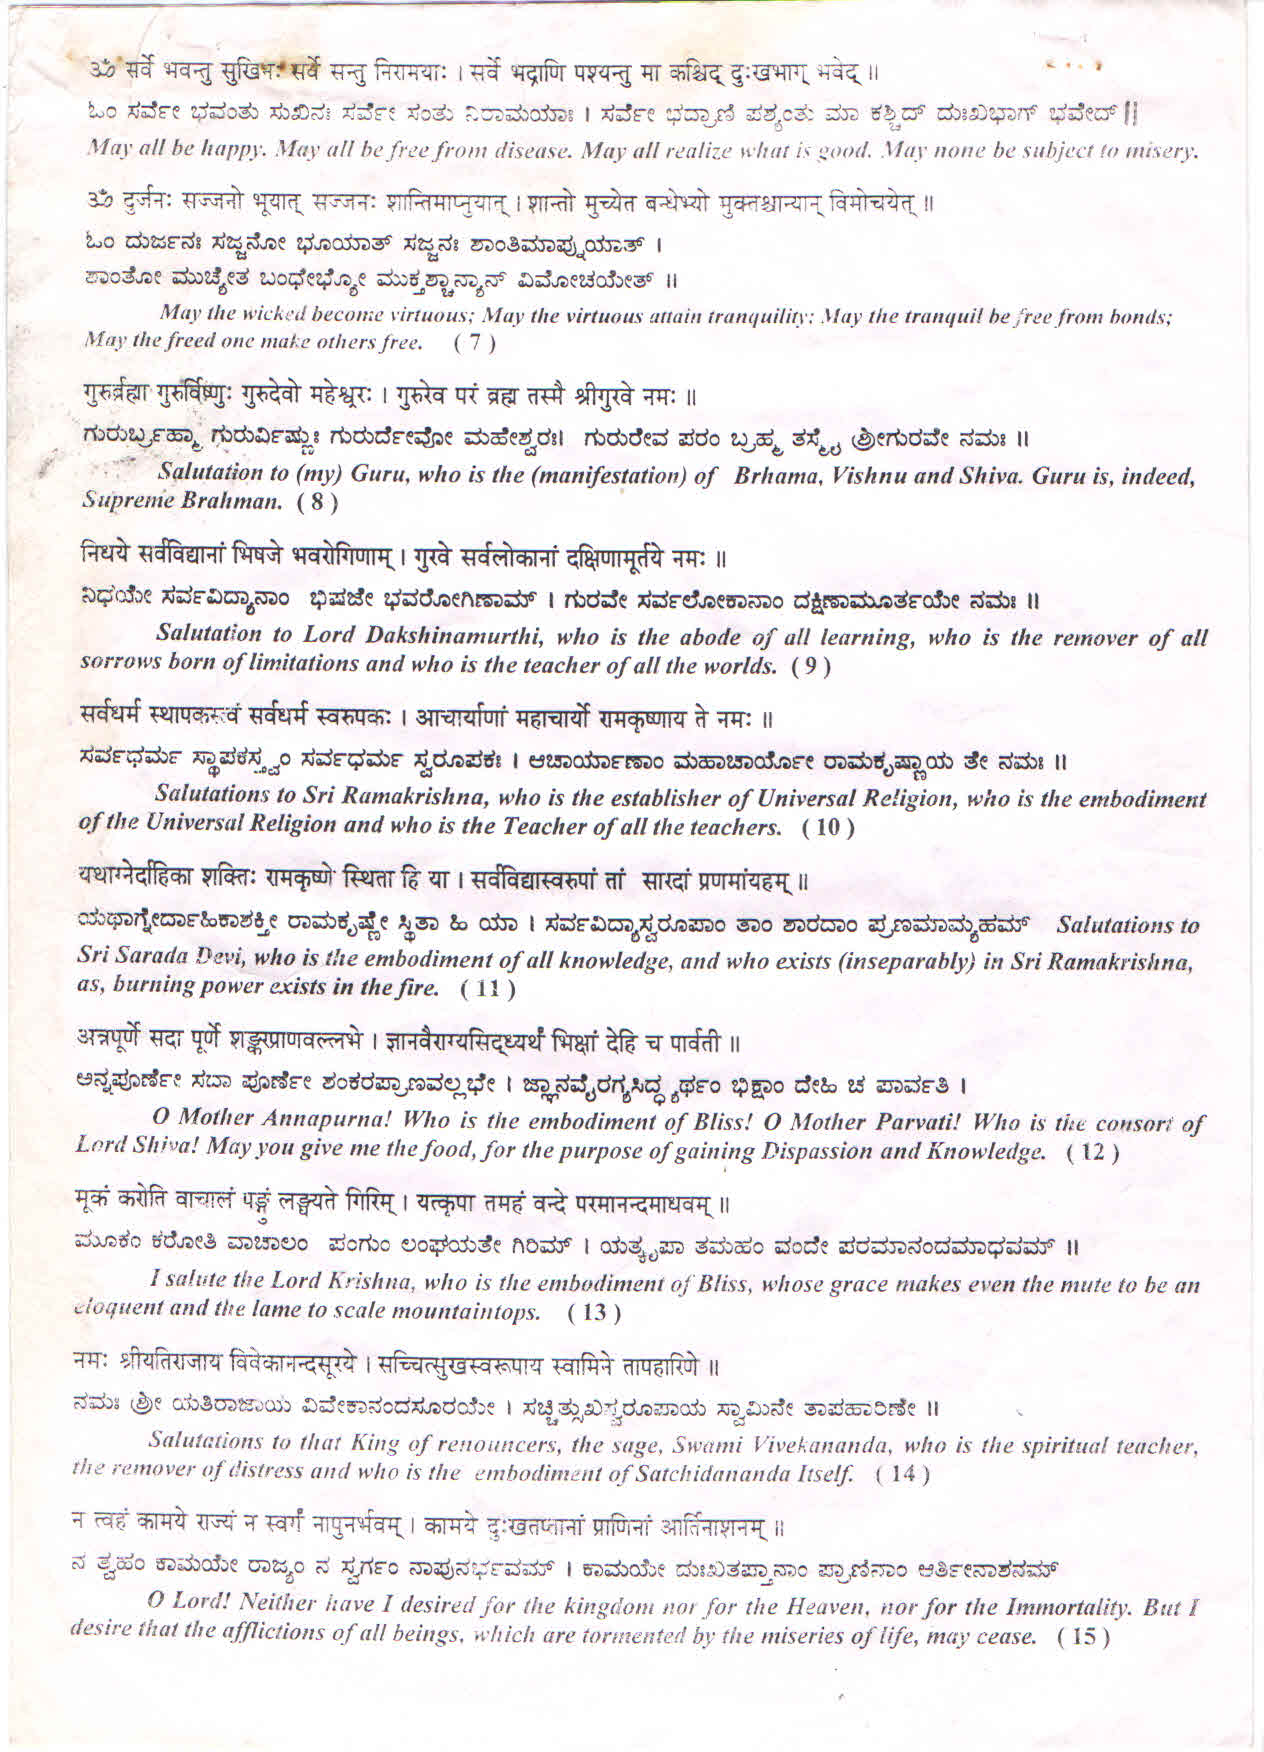 swami vivekananda essay swami vivekananda quotes pinteres essay of  prayer in school essay prayer in school essay gxart prayer in prayer in school essay